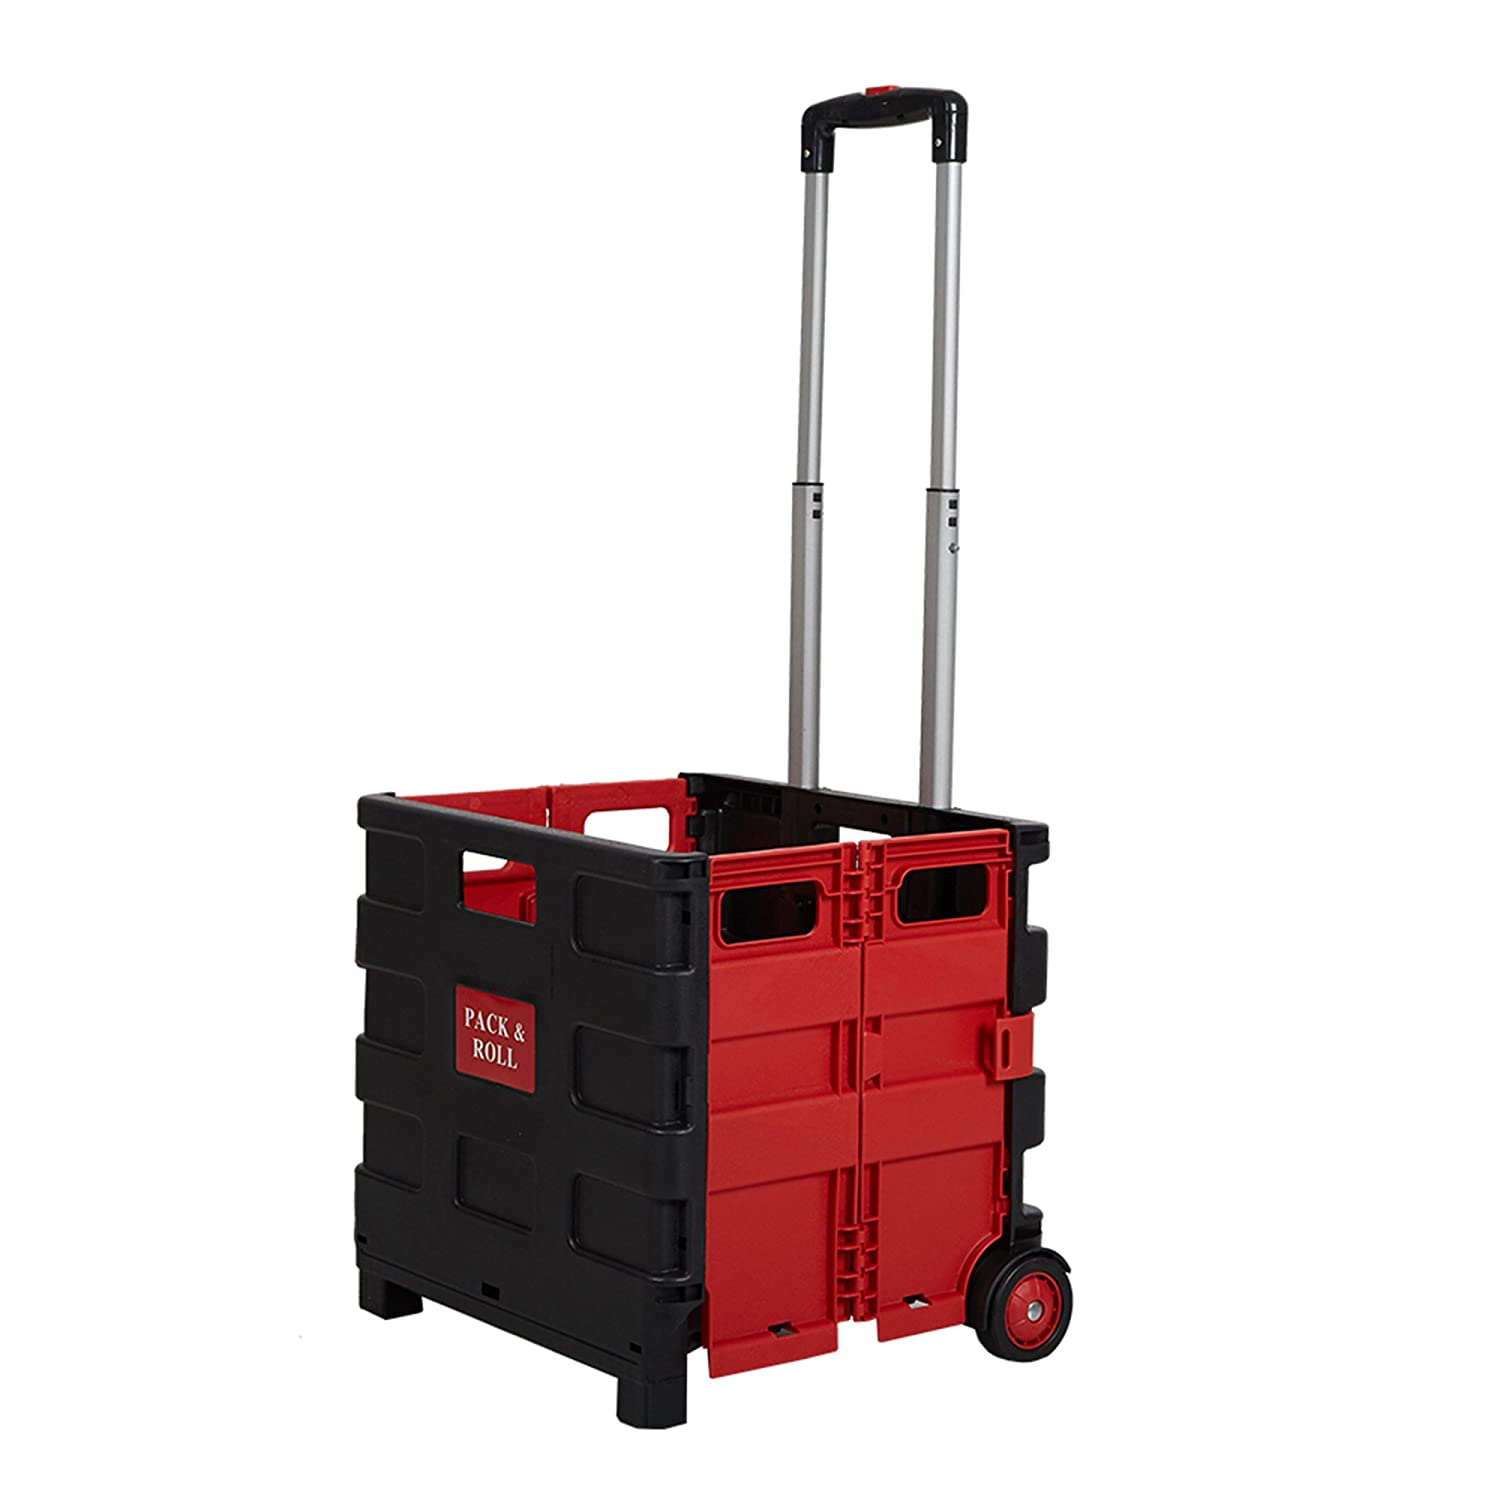 5530d1cdcda0 Lucky Tree Rolling Crate File Cart Folding Shopping Cart with Wheels  Collapsible Utility Cart for Office Travel, 15 x 16 x 14.5 inch, 77 lbs  Capacity